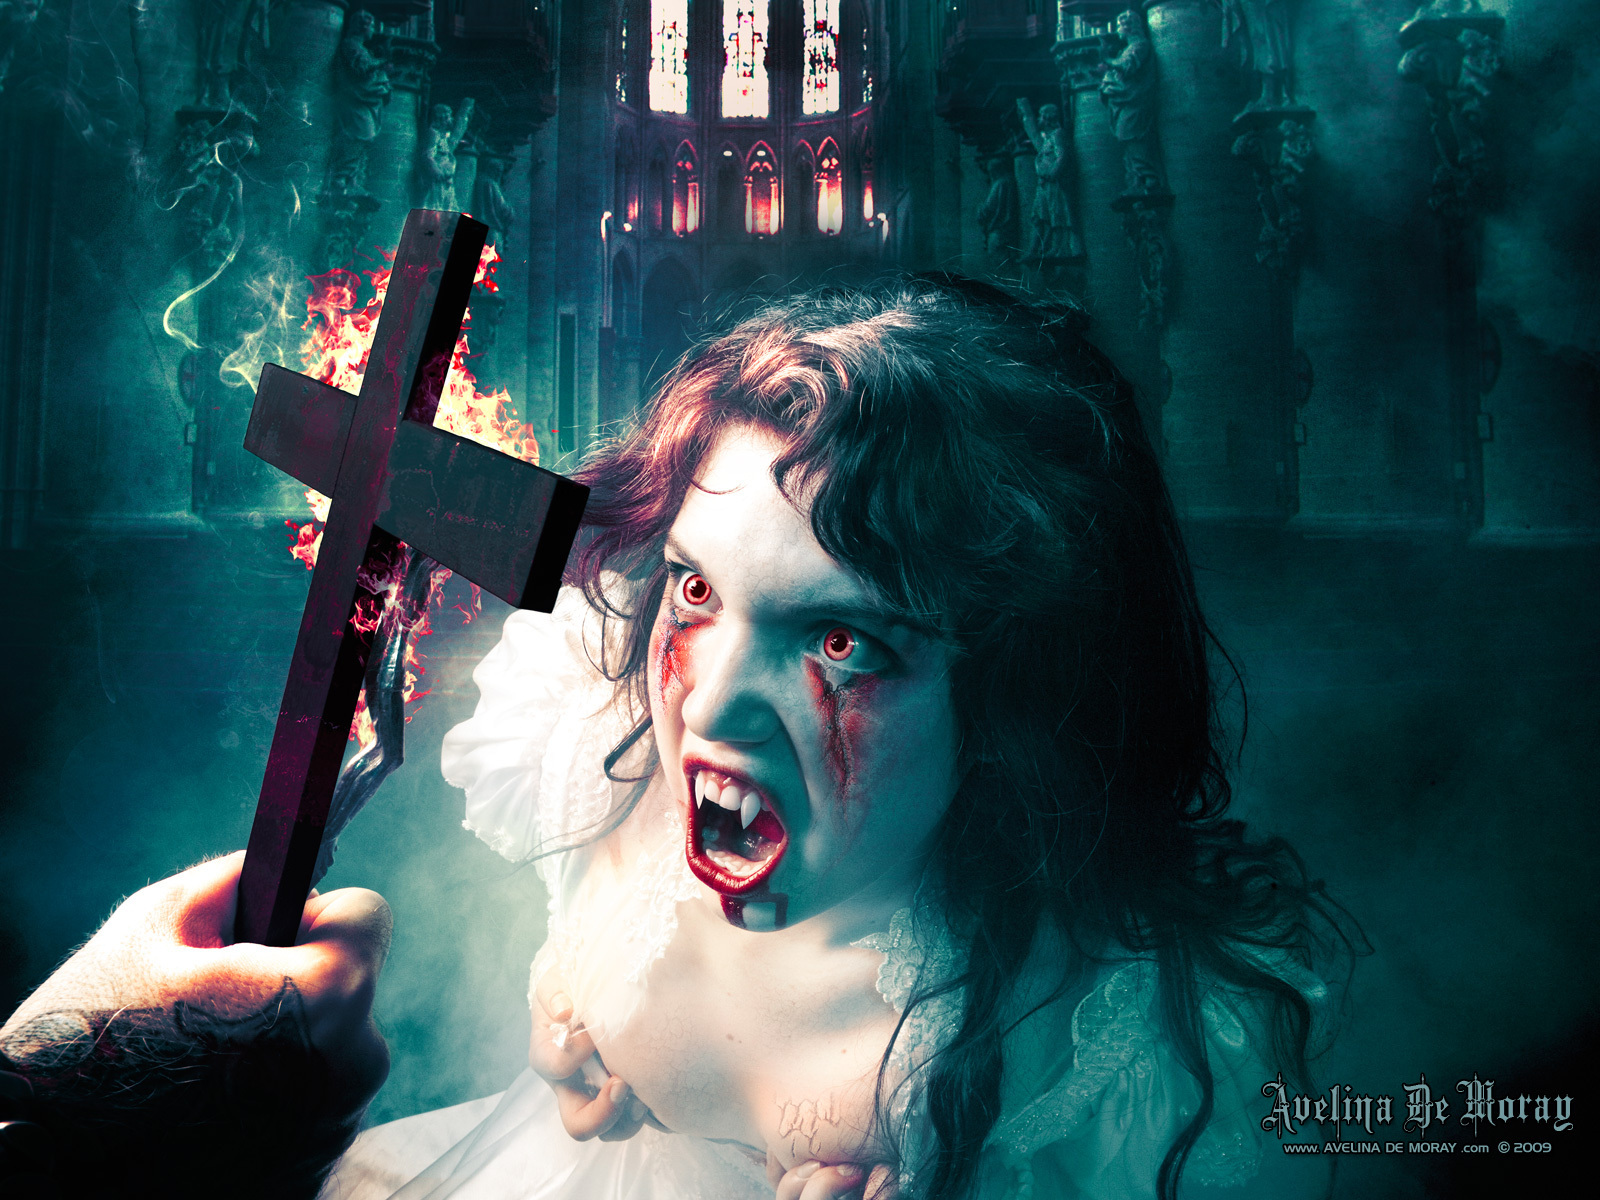 vampires images vampire and gothic wallpapersavelina de moray hd